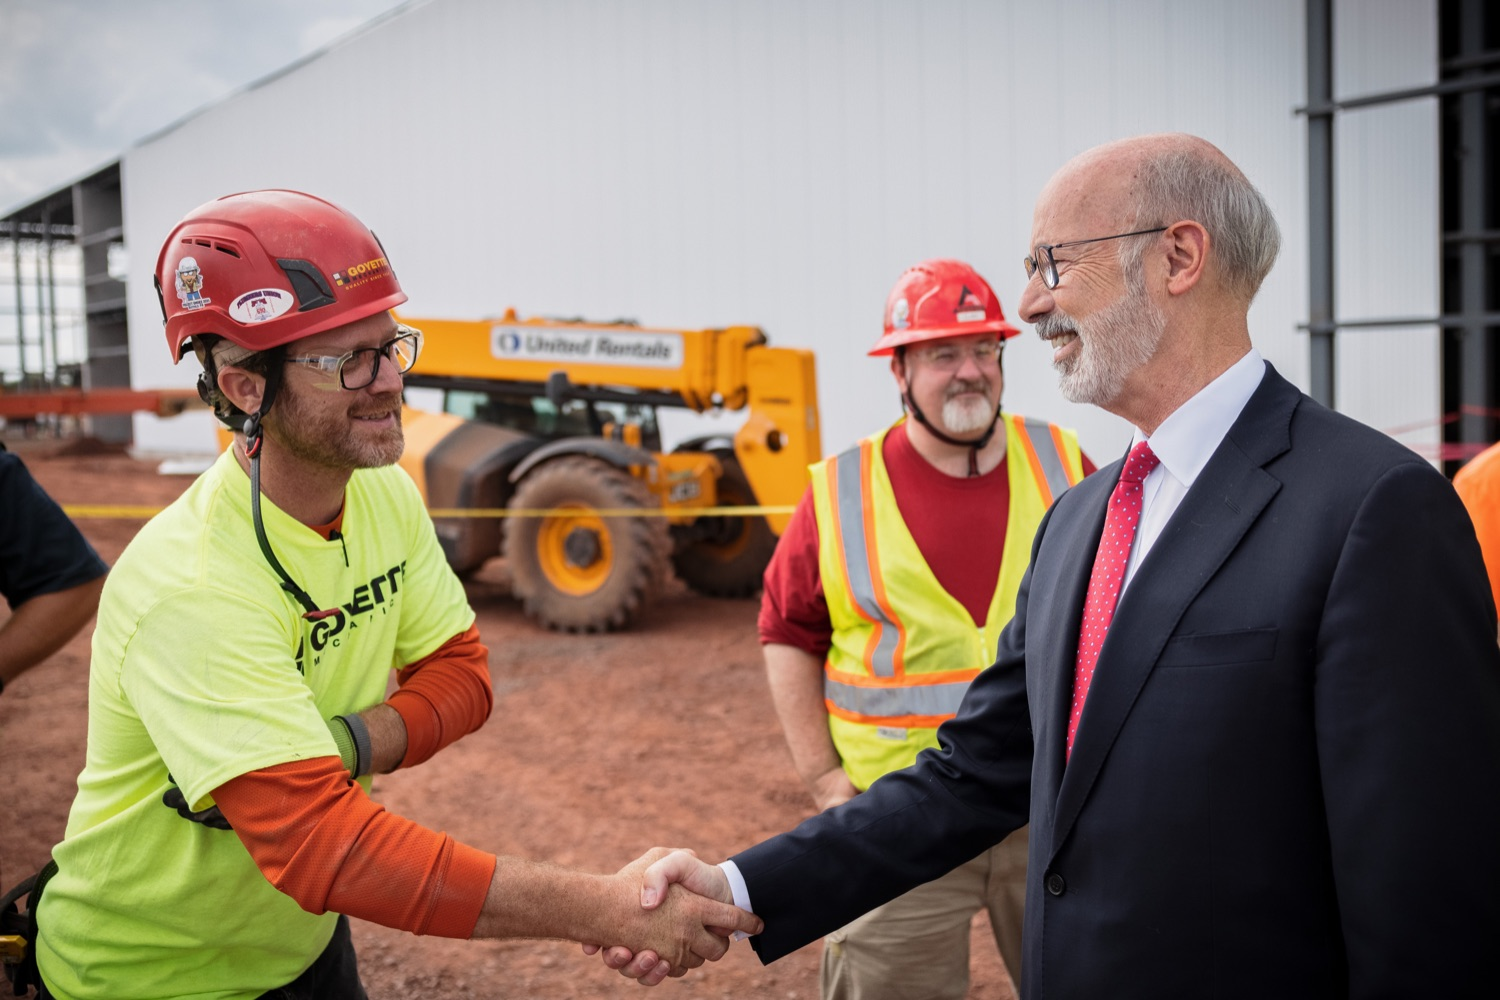 """<a href=""""https://filesource.wostreaming.net/commonwealthofpa/photo/20126_gov_economicDevelopment_dz_009.jpg"""" target=""""_blank"""">⇣Download Photo<br></a>Pennsylvania Governor Tom Wolf greeting construction workers as he tours the site.  Governor Tom Wolf joined Clemens Food Group leaders, Agriculture Secretary Russell Redding, Sen. Maria Collett, Rep. Steve Malagari and members of the Governors Action Team today to tour the construction of the companys new facility in Montgomery County. The Wolf Administration supported the project which will expand the business operations and create new jobs in the region. Hatfield, PA   October 8, 2021"""